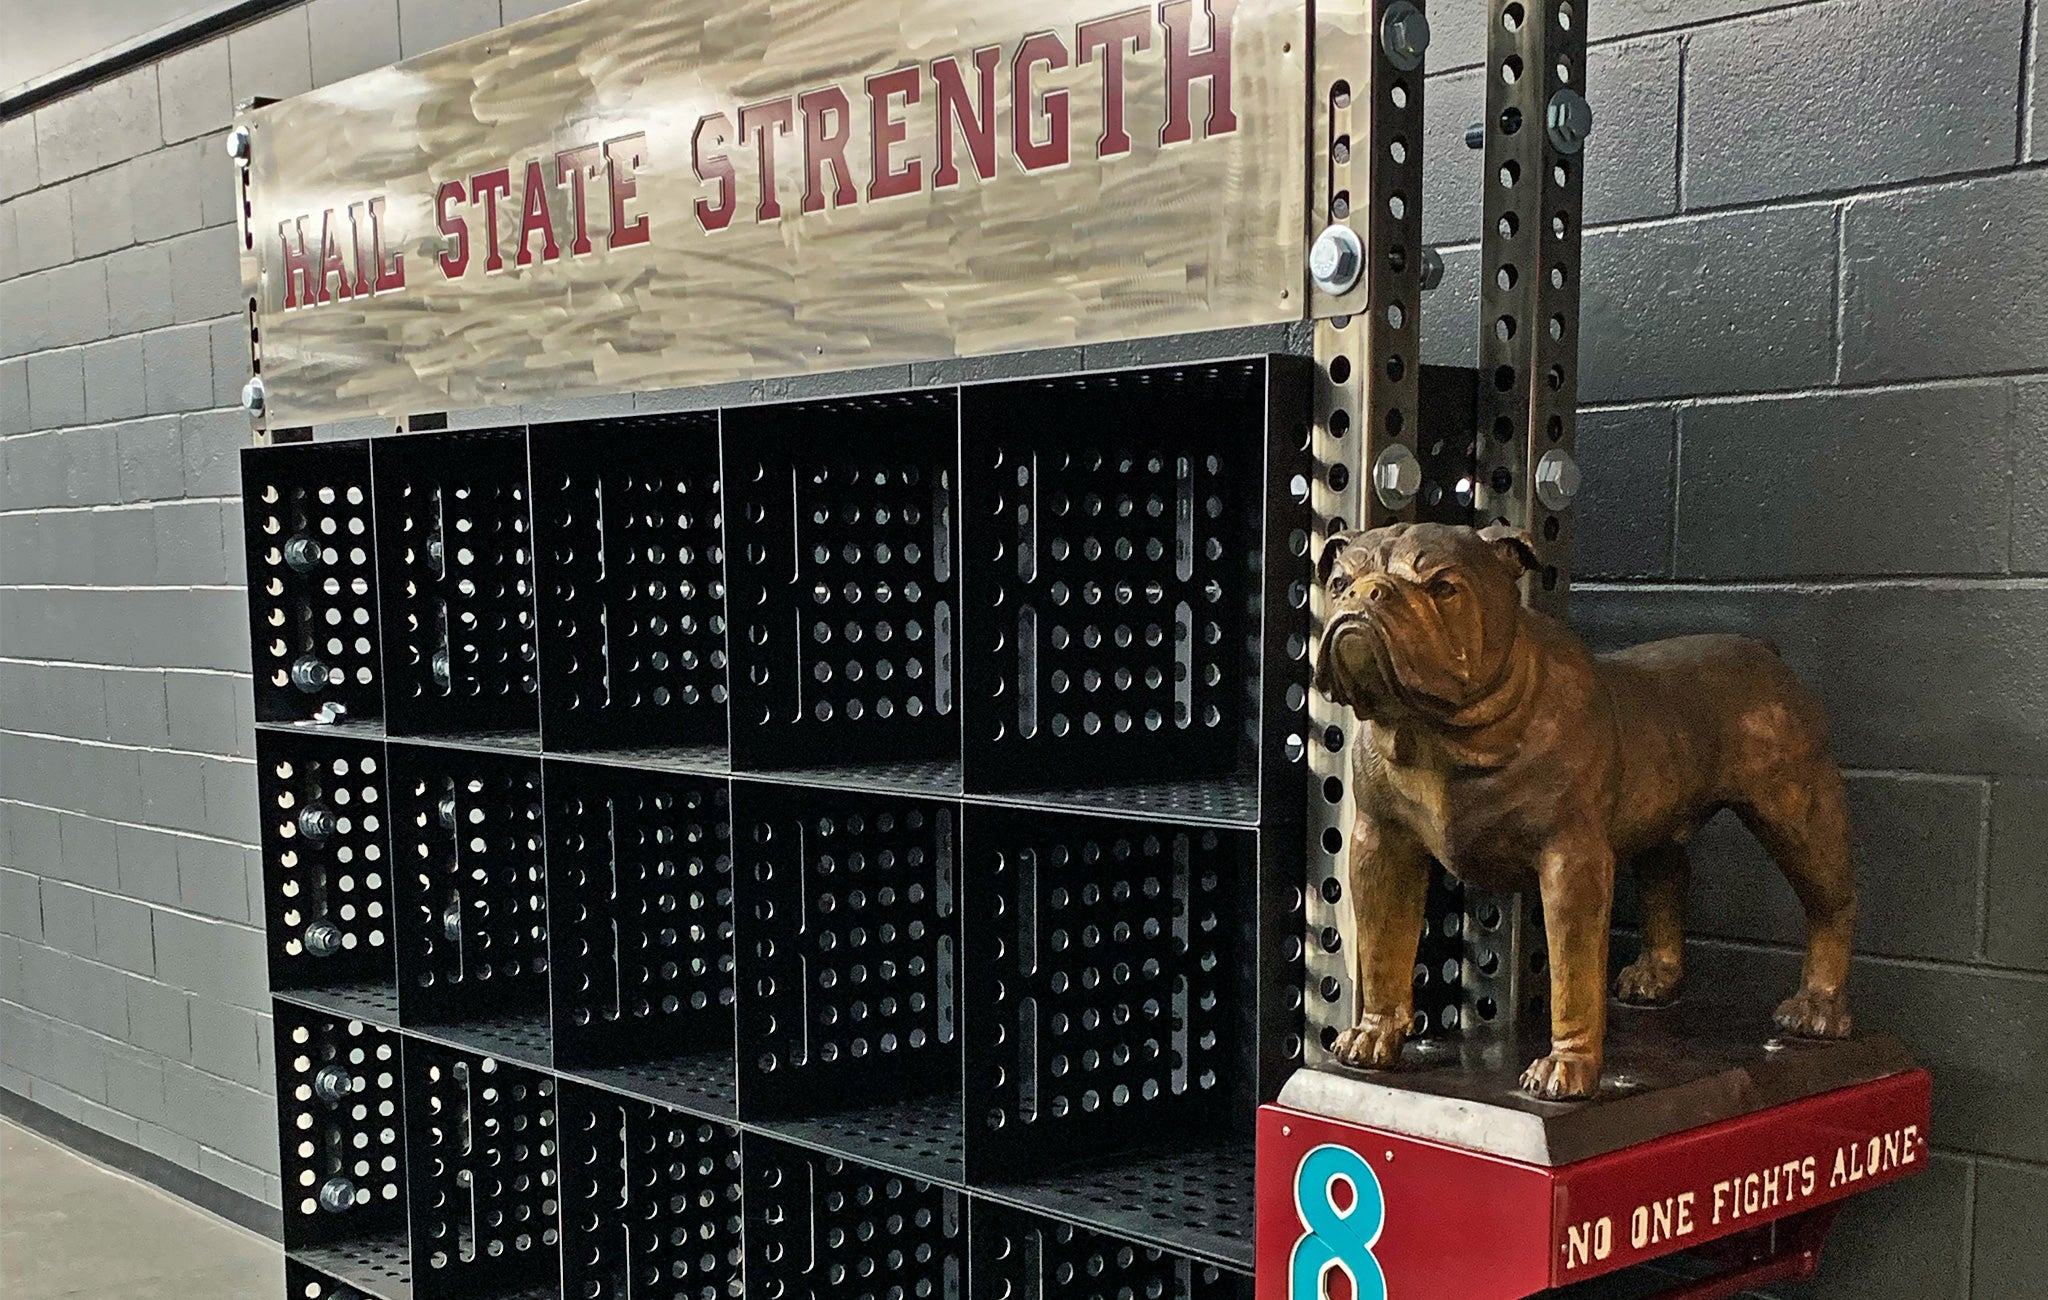 Mississippi State strength training facility